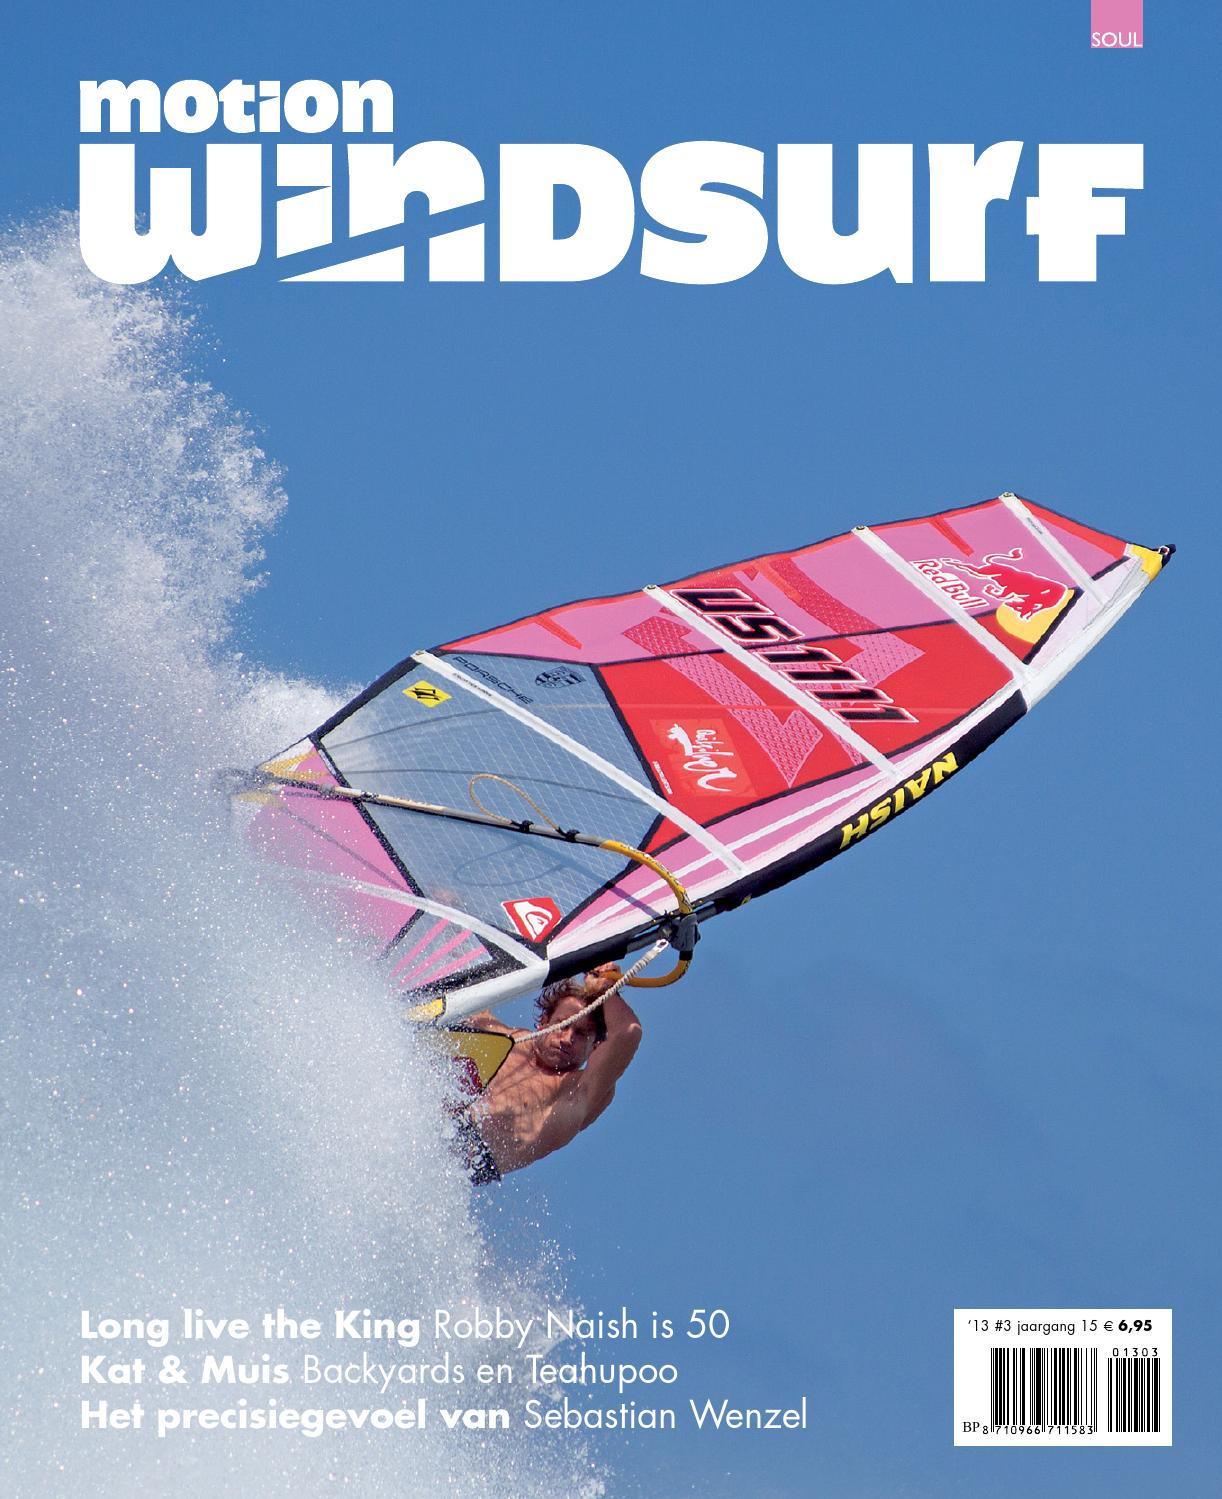 cd9e9d0e5aac33 Motion windsurf magazine #3 2013 by Soul Media - issuu